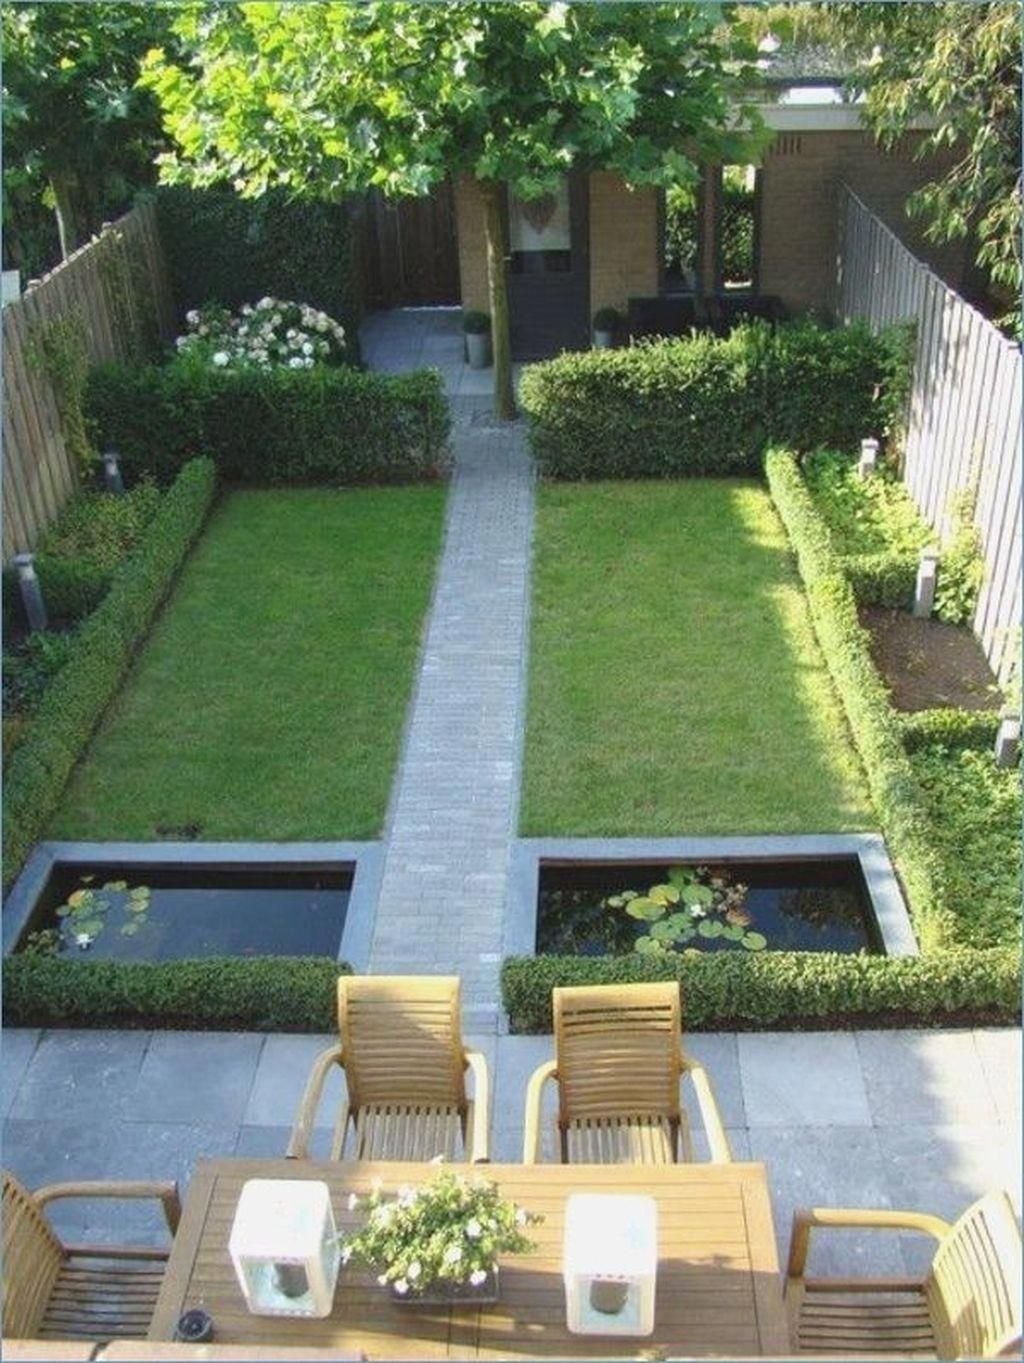 Redo Your Landscape Without The Help Of A Professional | Backyard ...